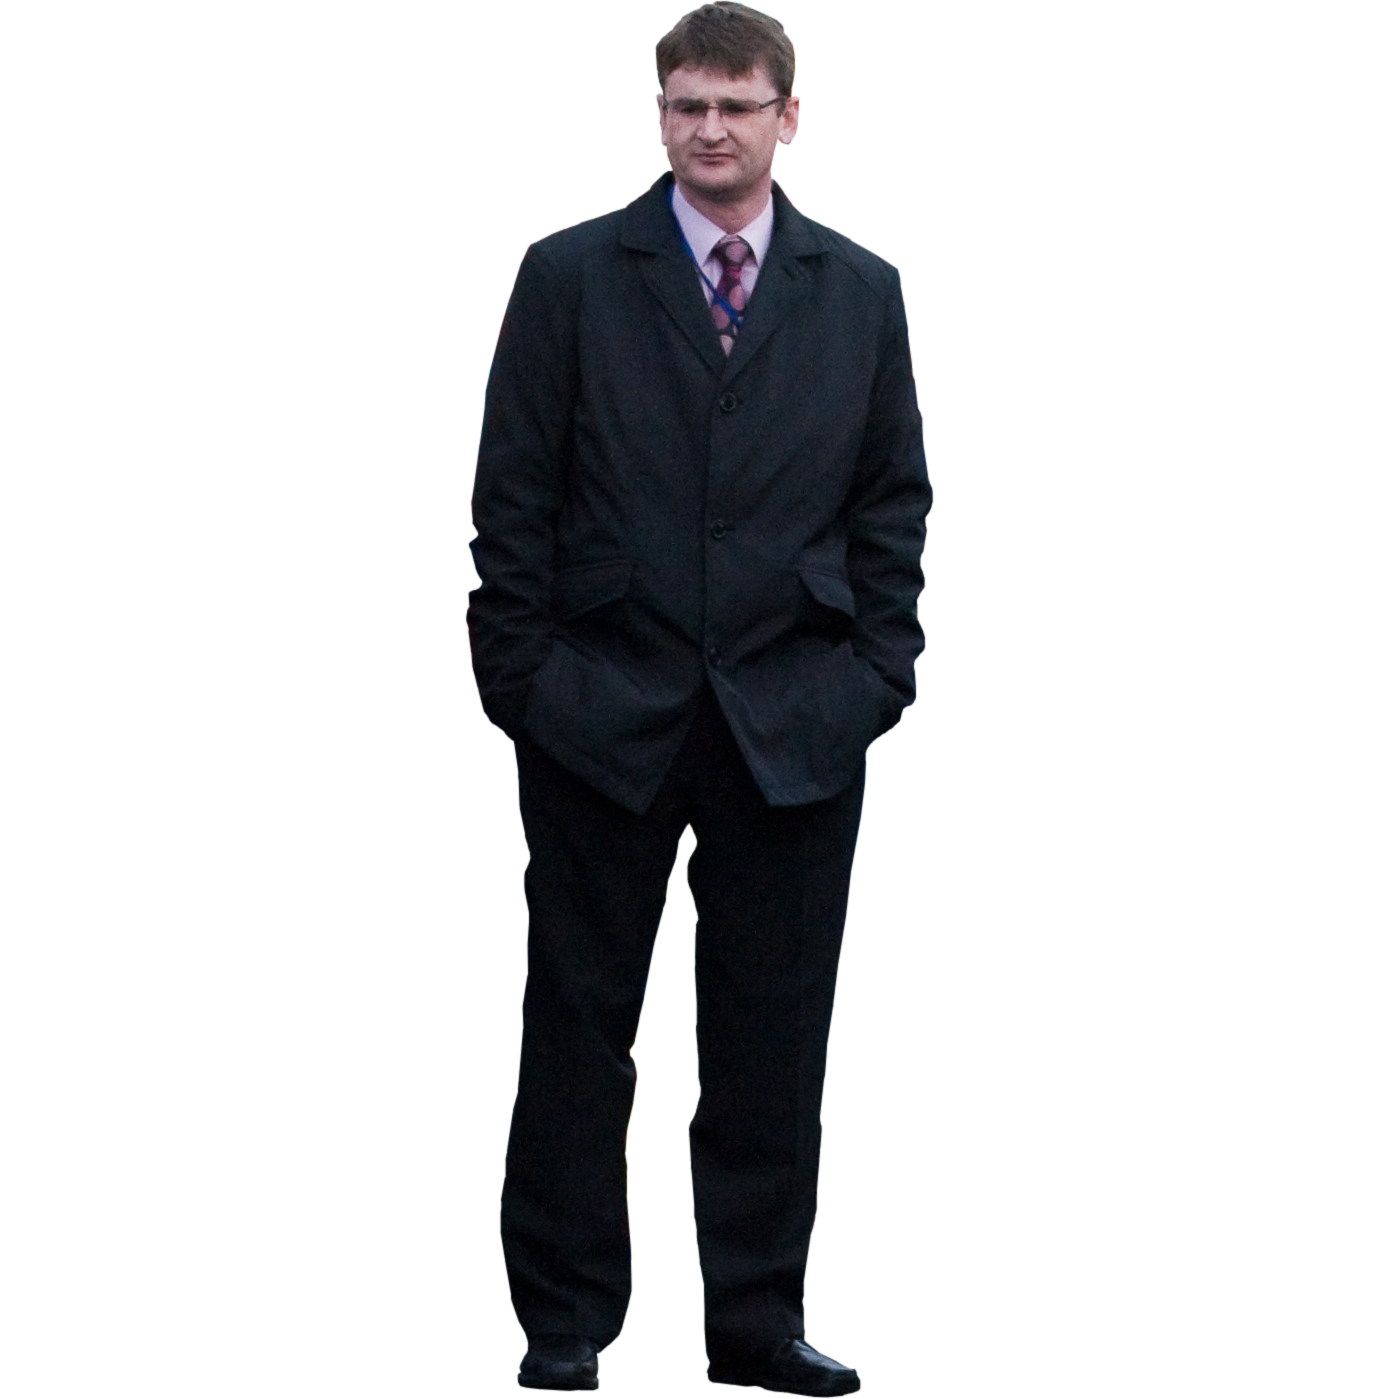 Suit Free Download PNG - Person In A Suit PNG